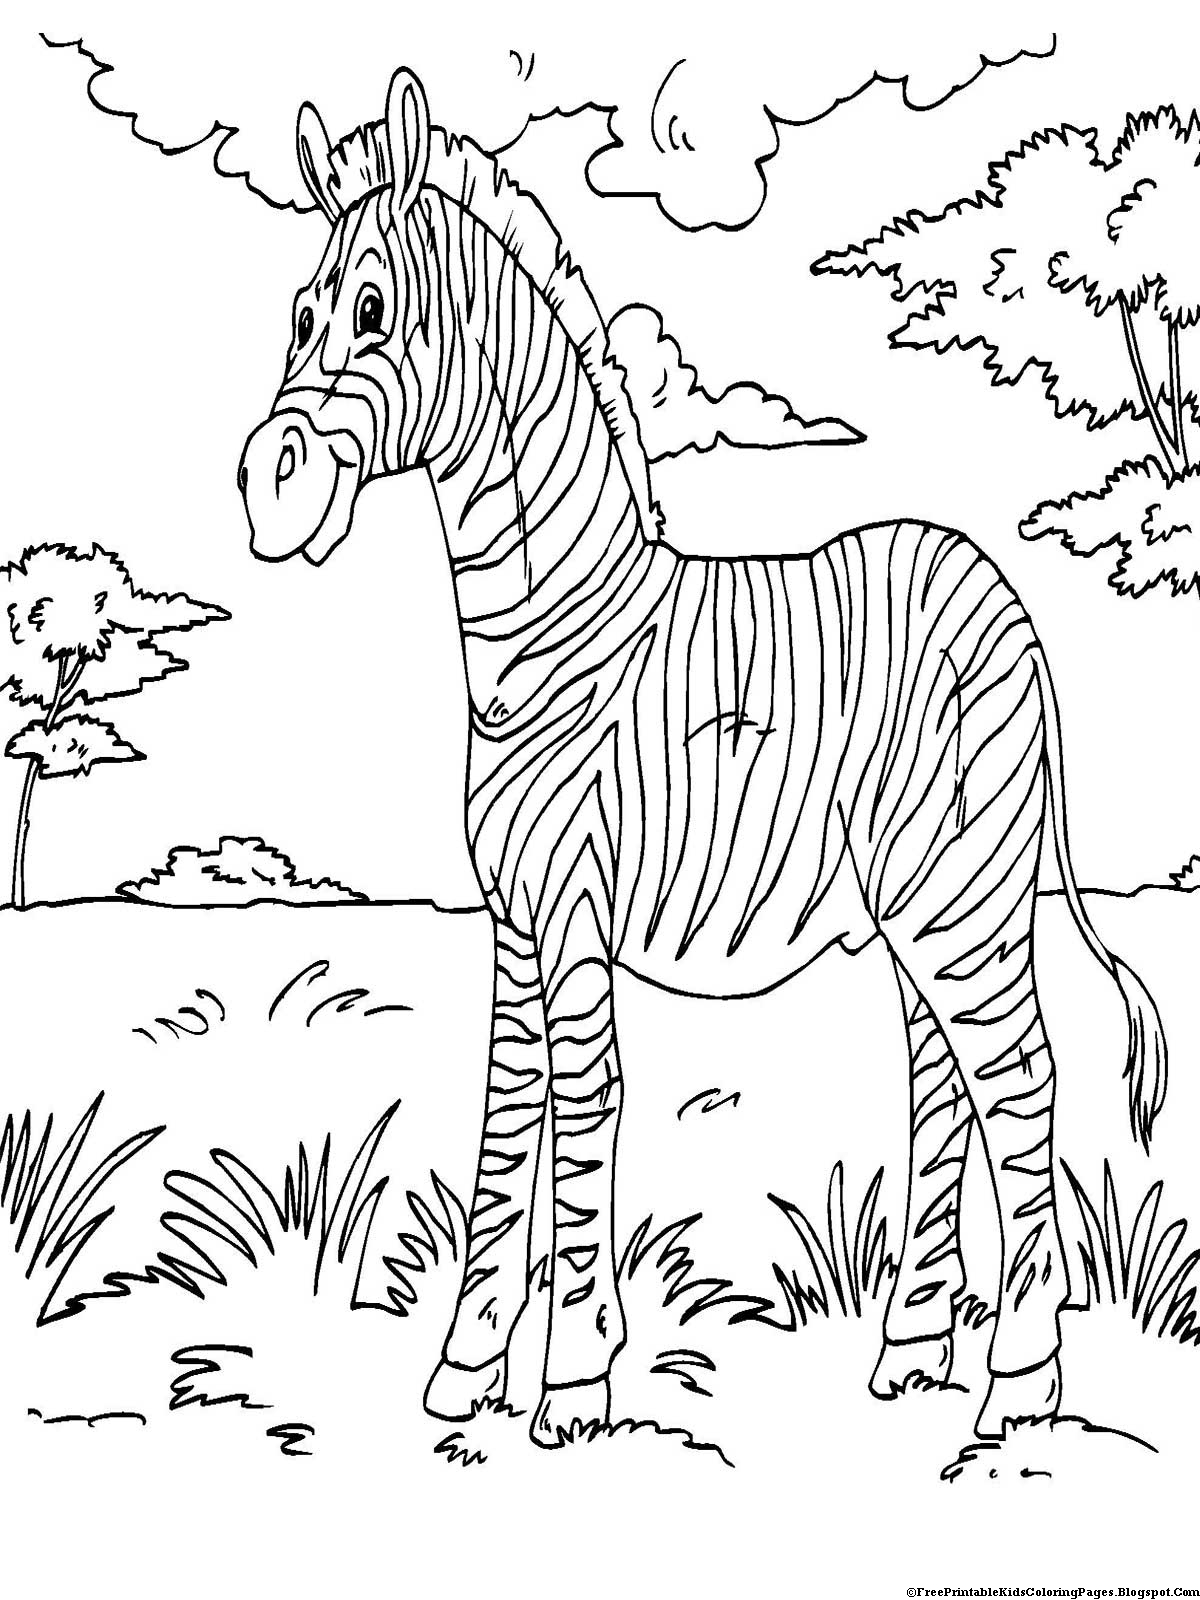 animal coloring pages free 30 free coloring pages a geometric animal coloring animal free pages coloring